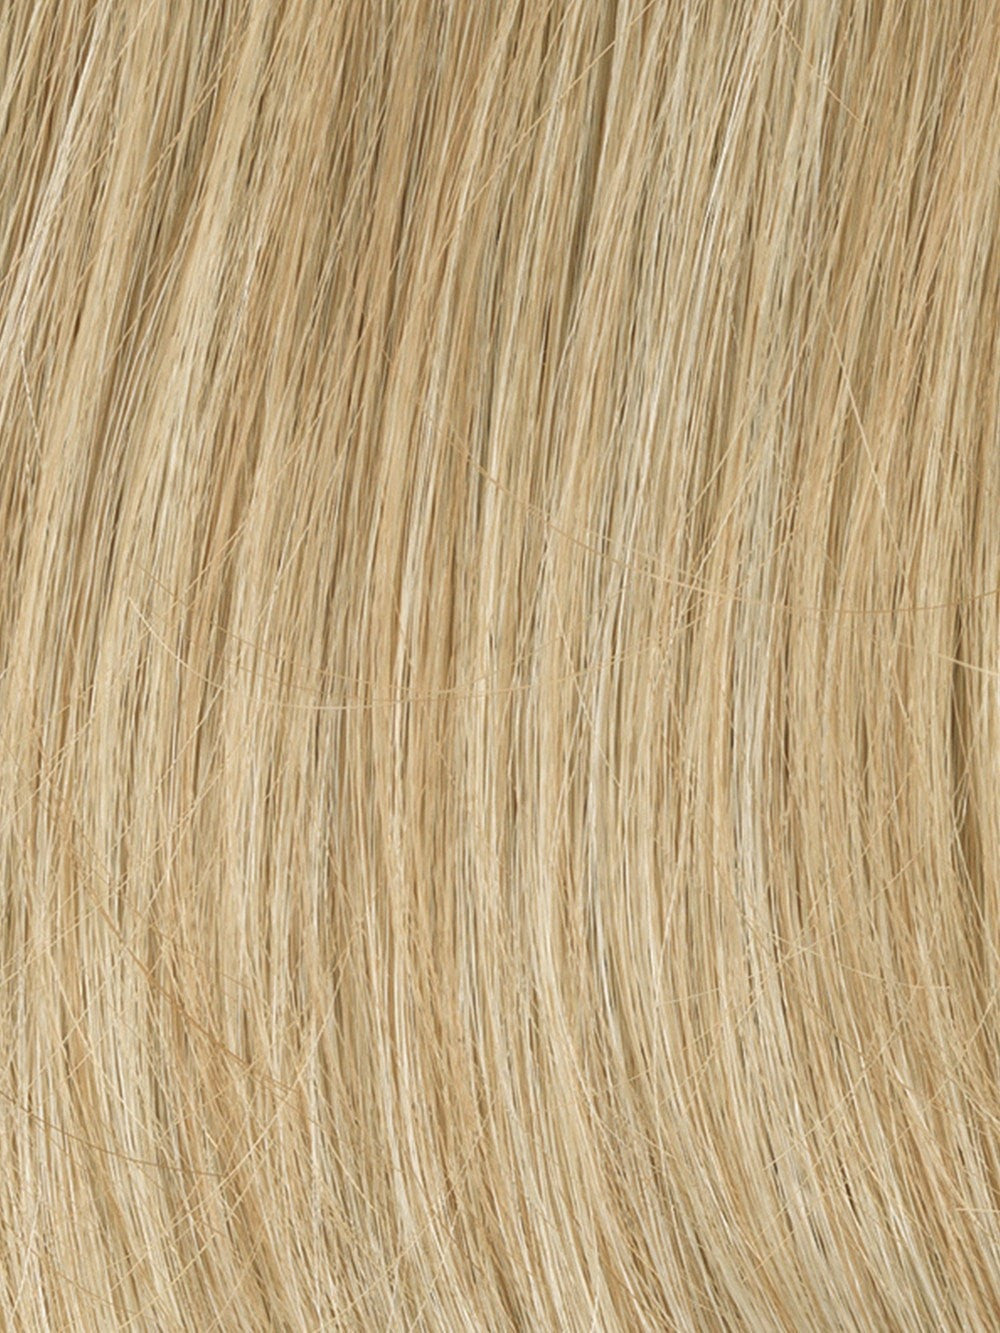 Pony layered flip by toni brattin ponytail hair extensions 933 platinum blonde lightest or brightest blonde pmusecretfo Gallery